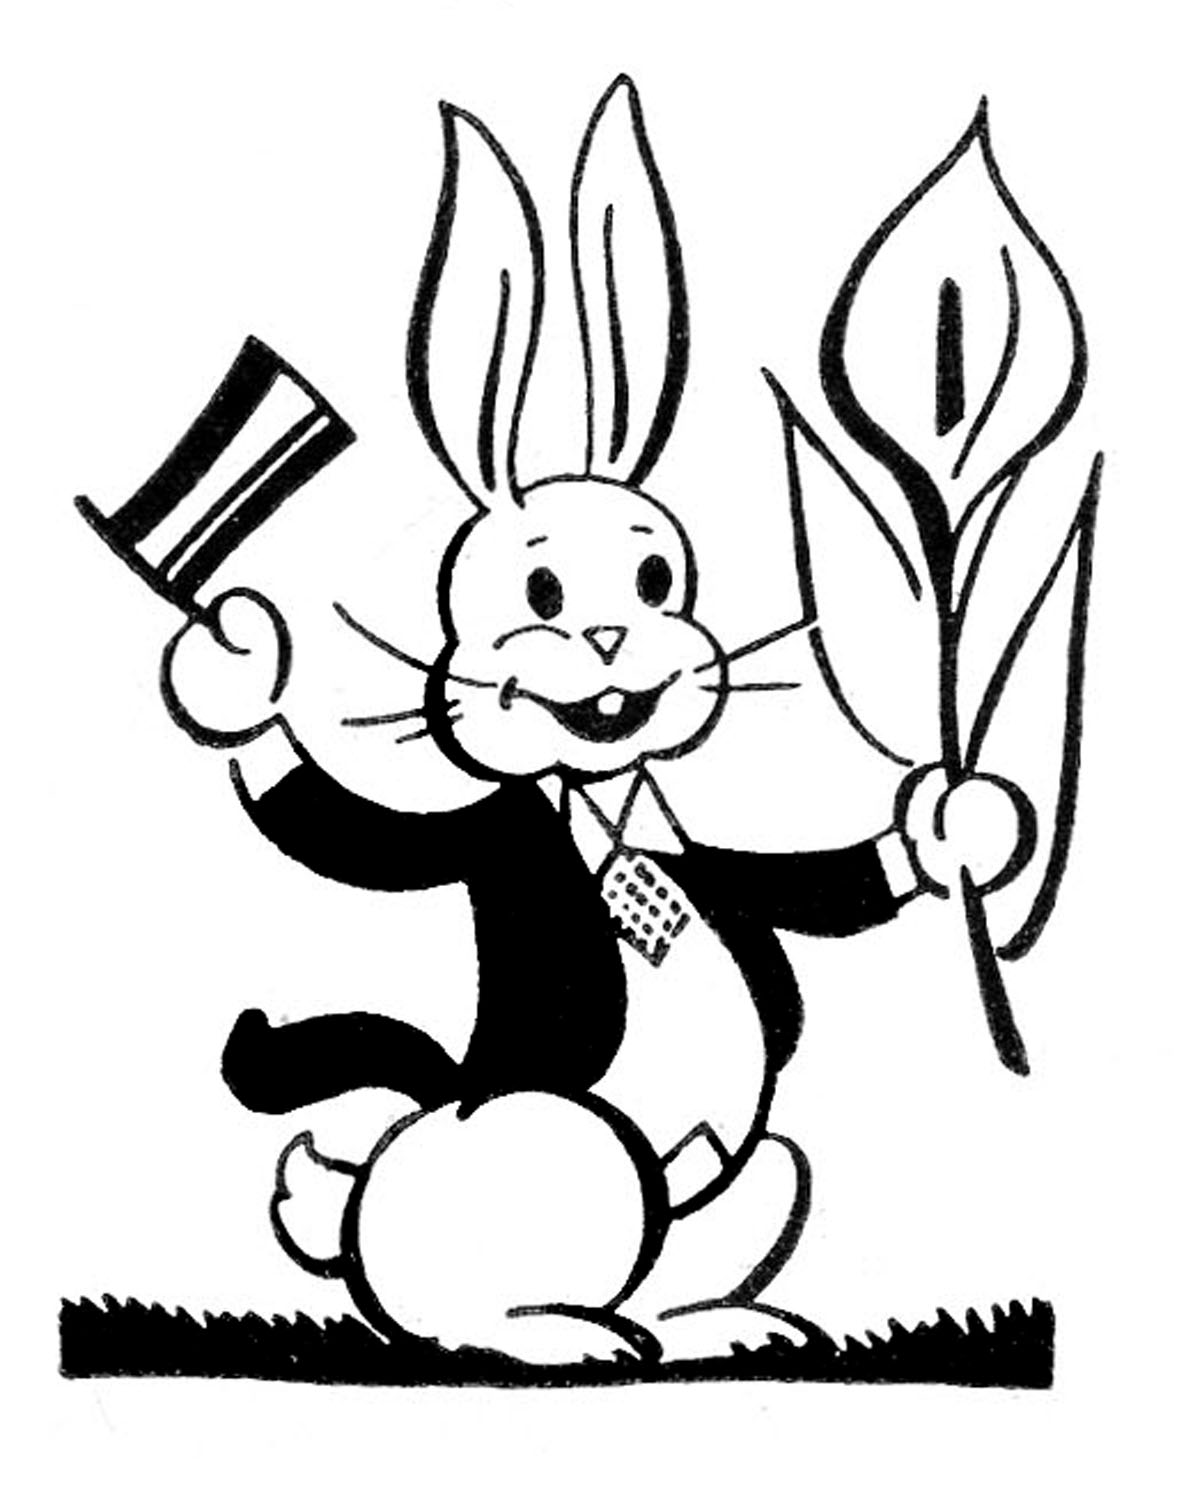 20 Bunny Rabbit Silhouettes And Clip Art